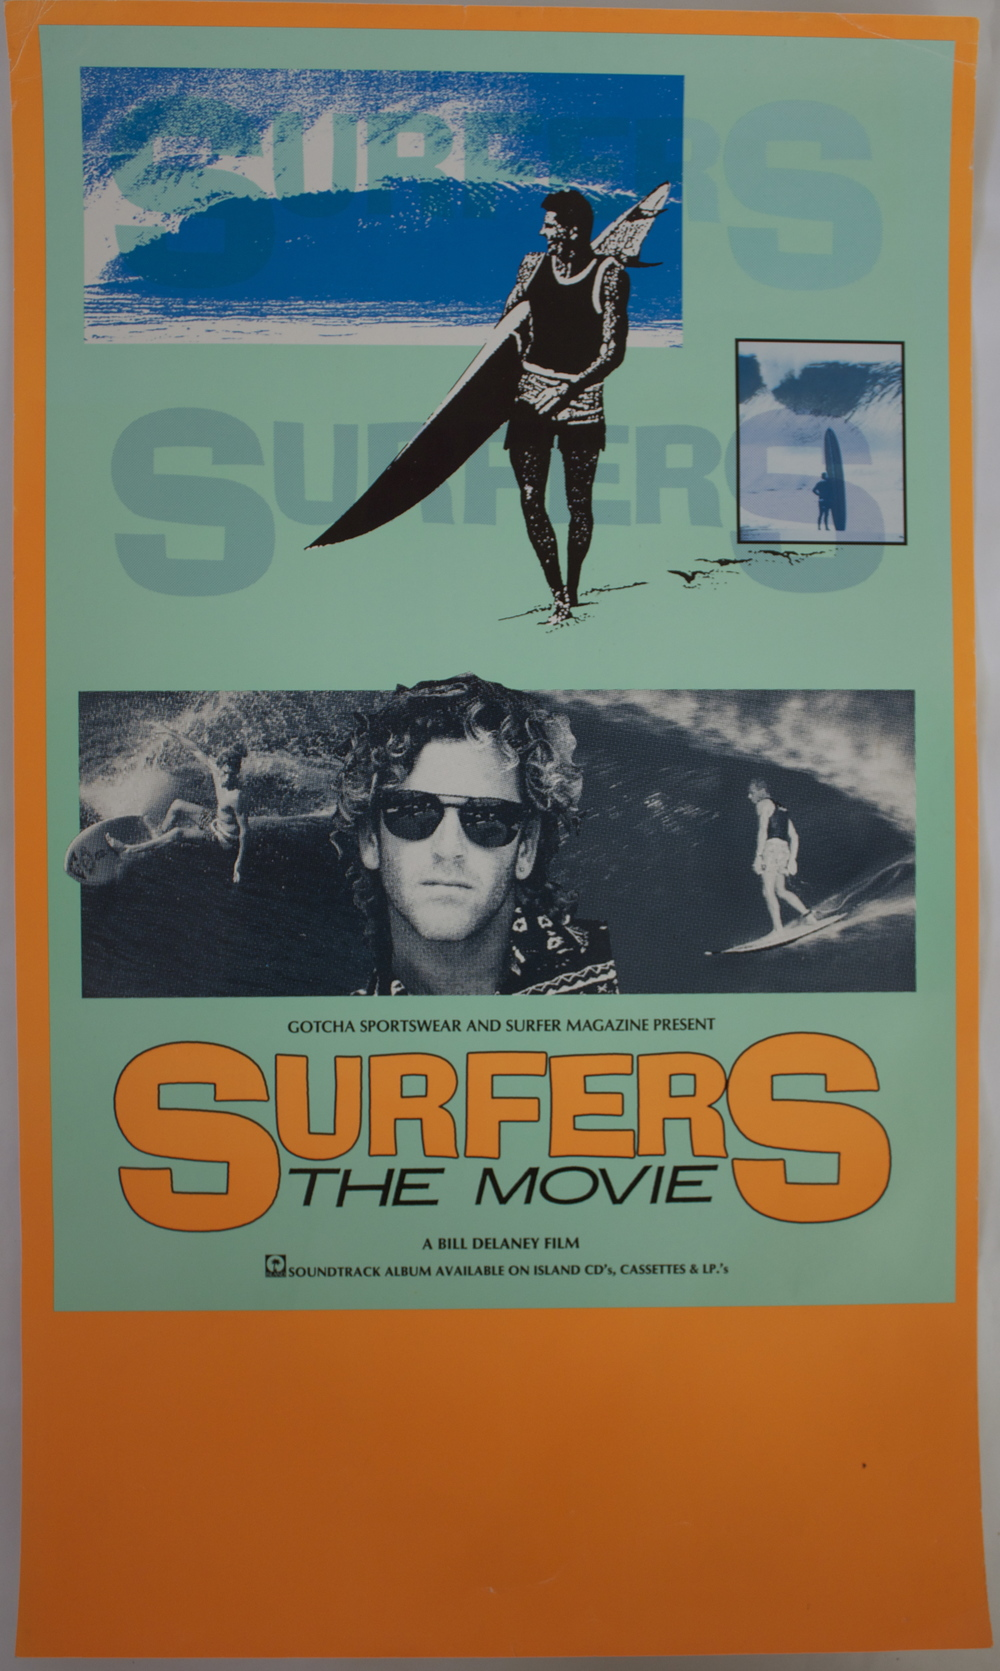 LOT 88 surfers movie  - copie.jpg